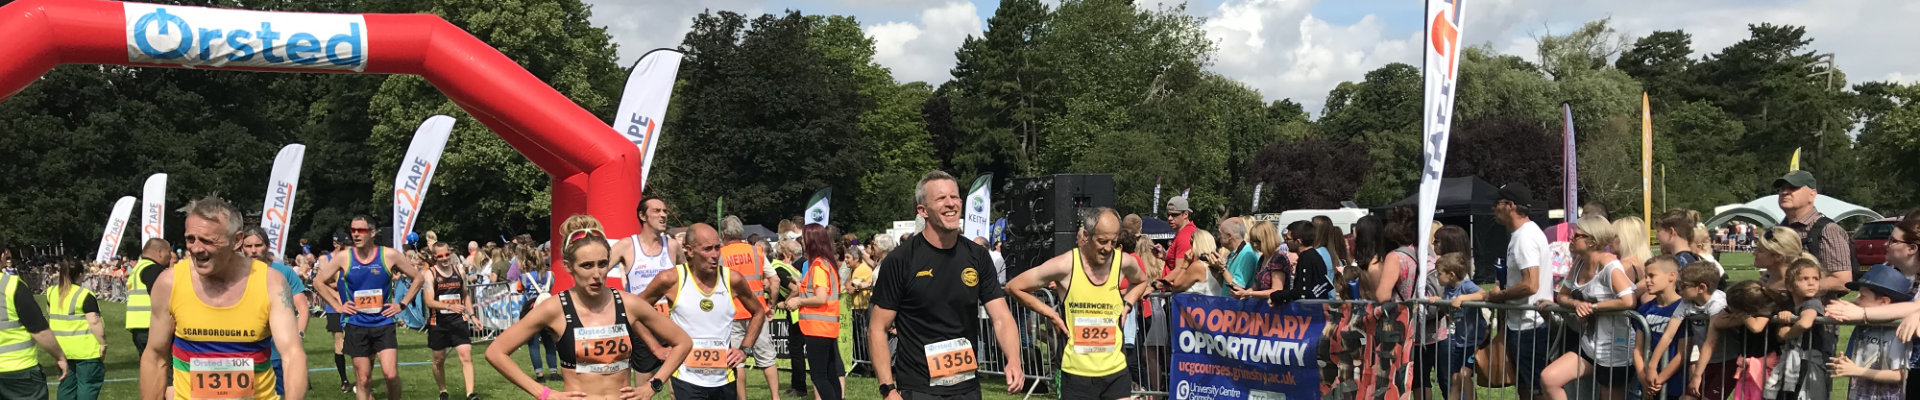 Ørsted Great Grimsby Virtual 10k 2020